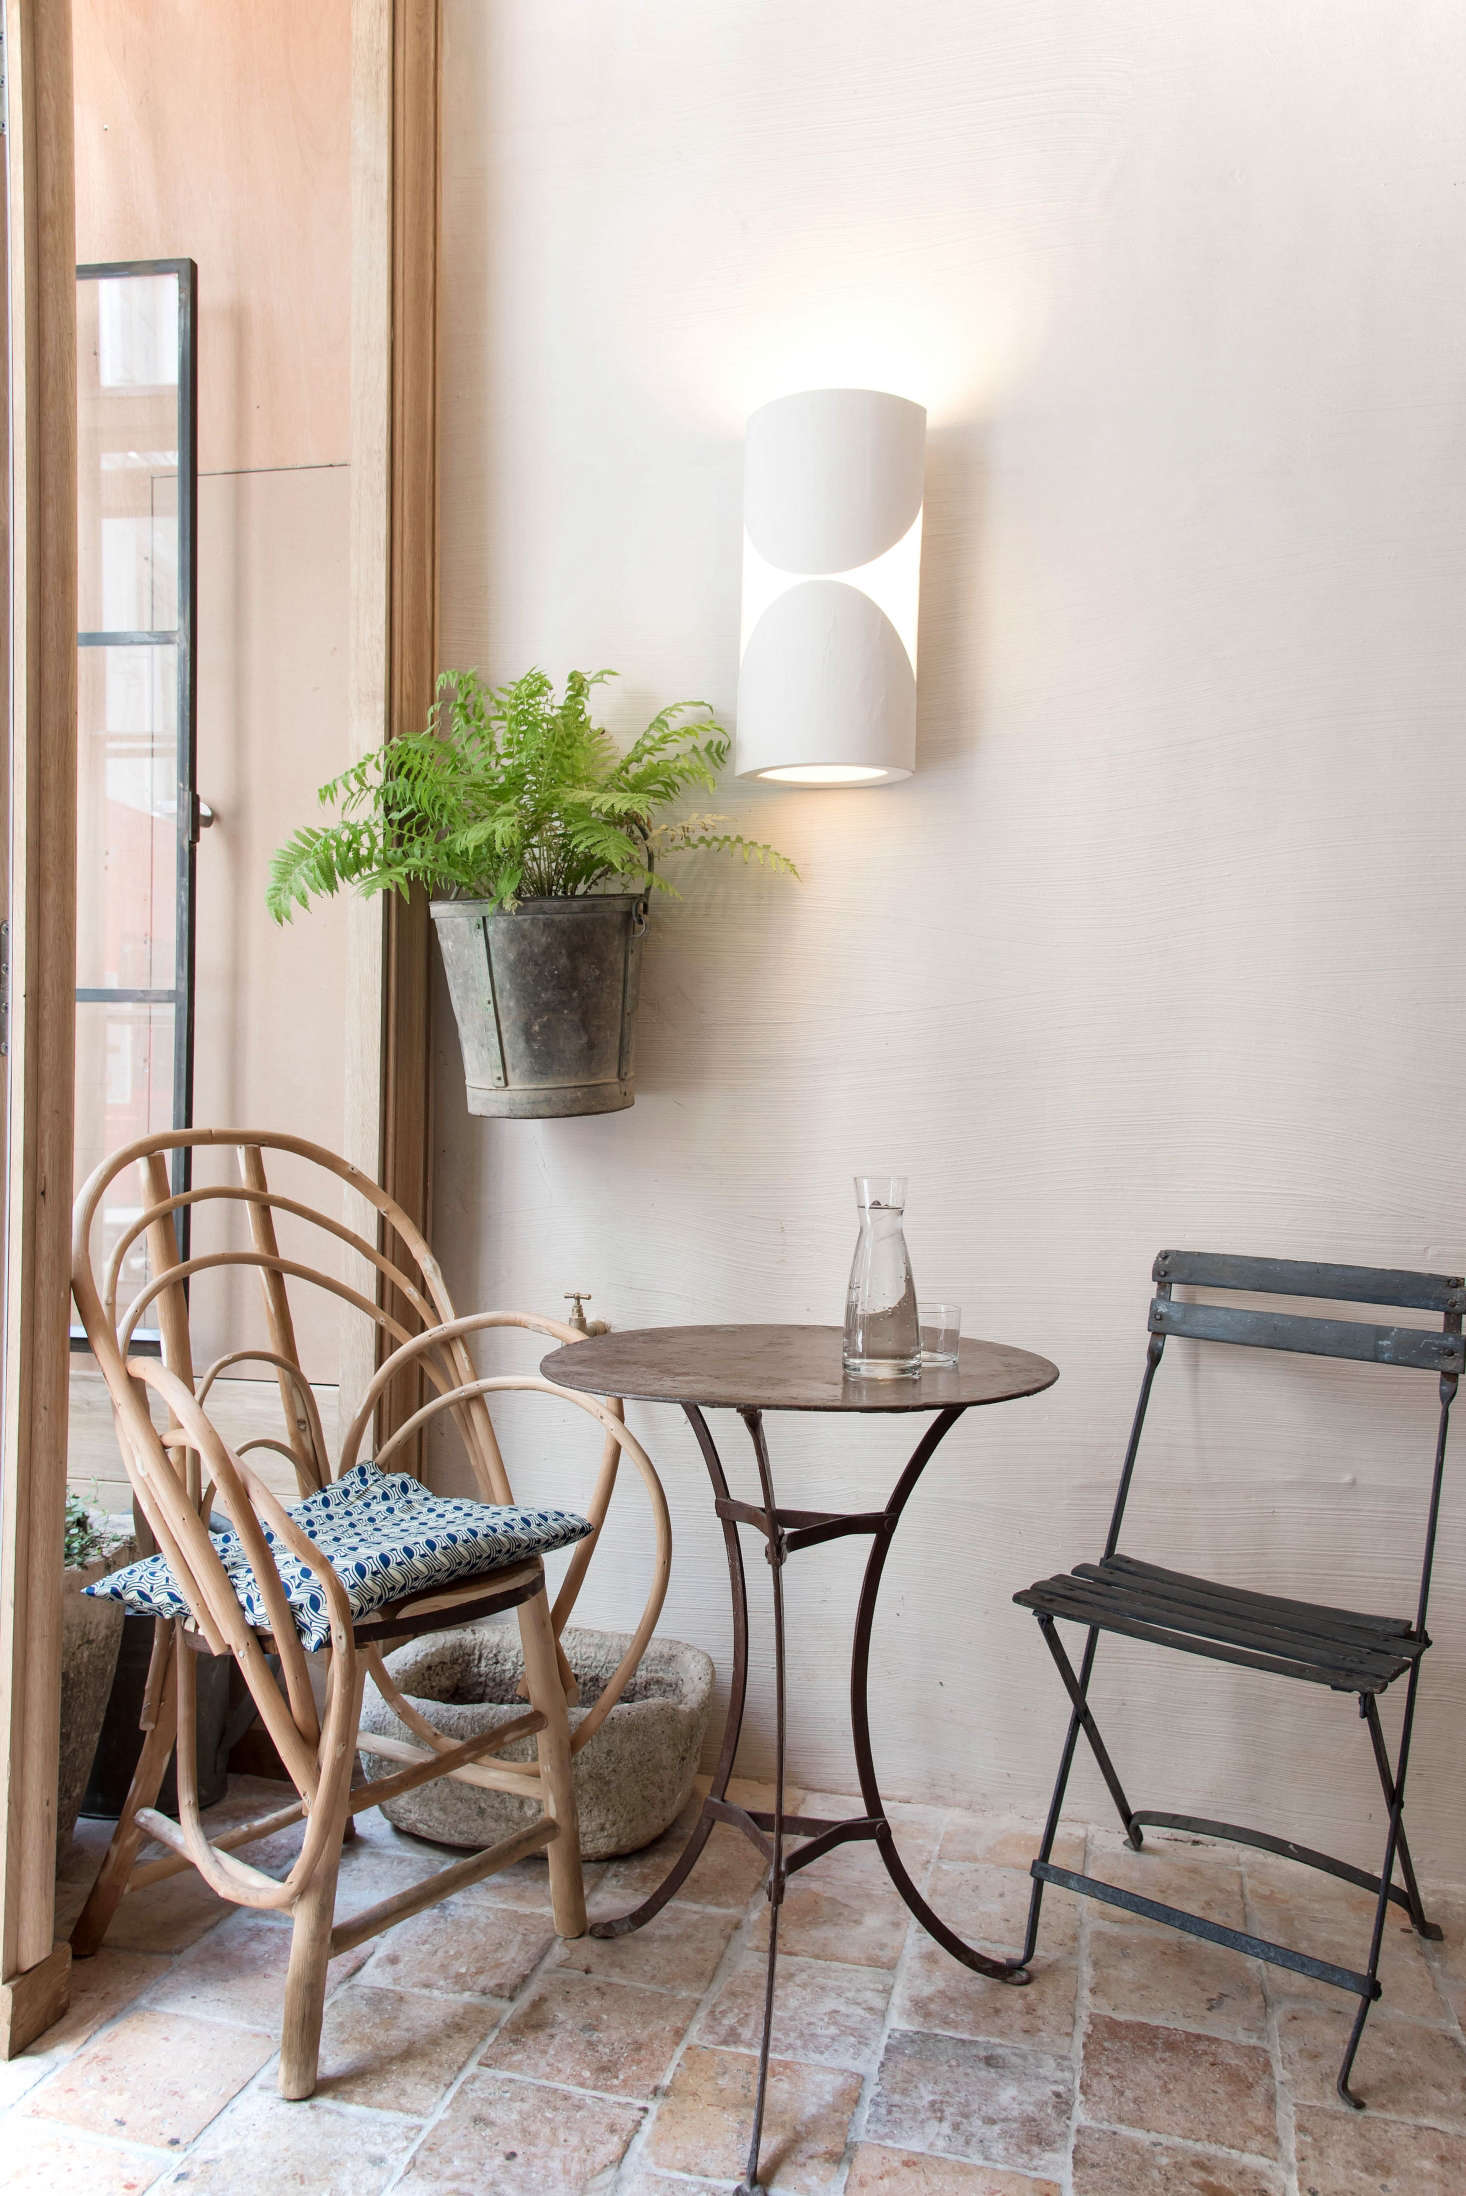 The front terrasse room has the feel of a laid-back garden in a generations-old family estate, thanks to mix-and-match vintage garden furniture that de Villeneuve sourced from flea markets andbrocantes in the South of France. For easy charm, follow suit: Mix indoor with outdoor chairs, cane with metal, and a cushion or two. (The plaster lights were designed by Champsaur.)